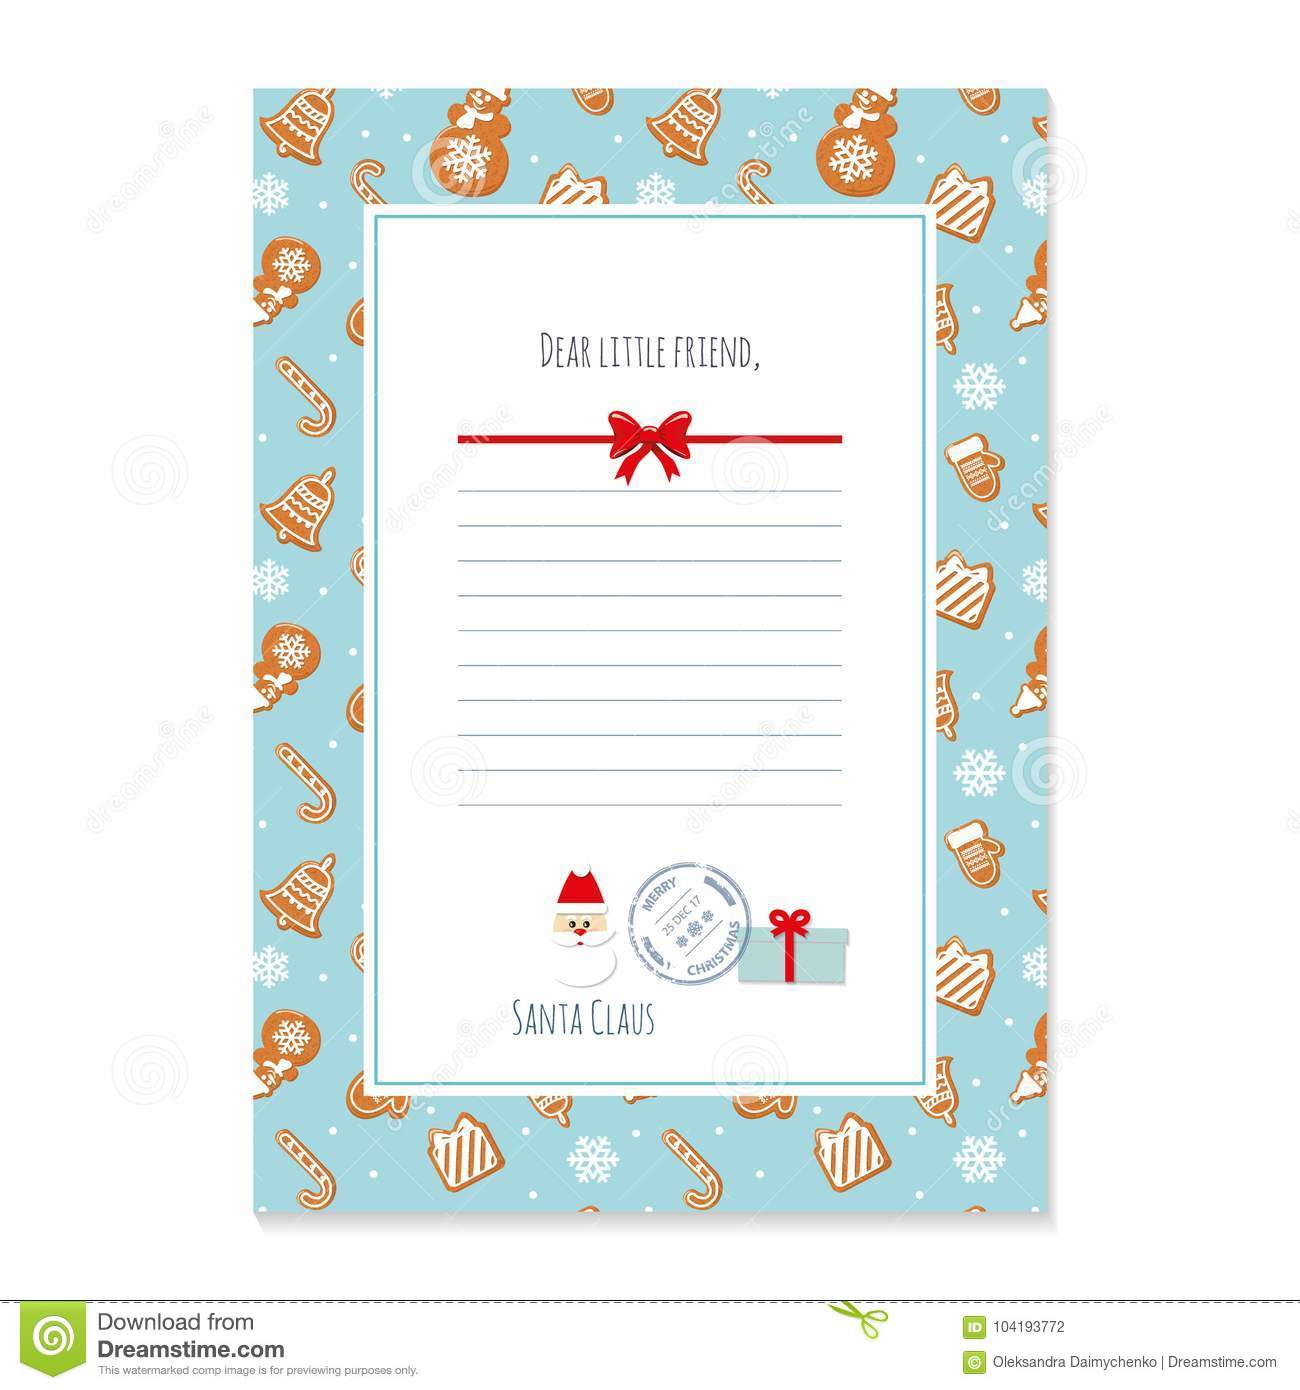 Christmas Letter From Santa Claus Template. Layout In A4 Size